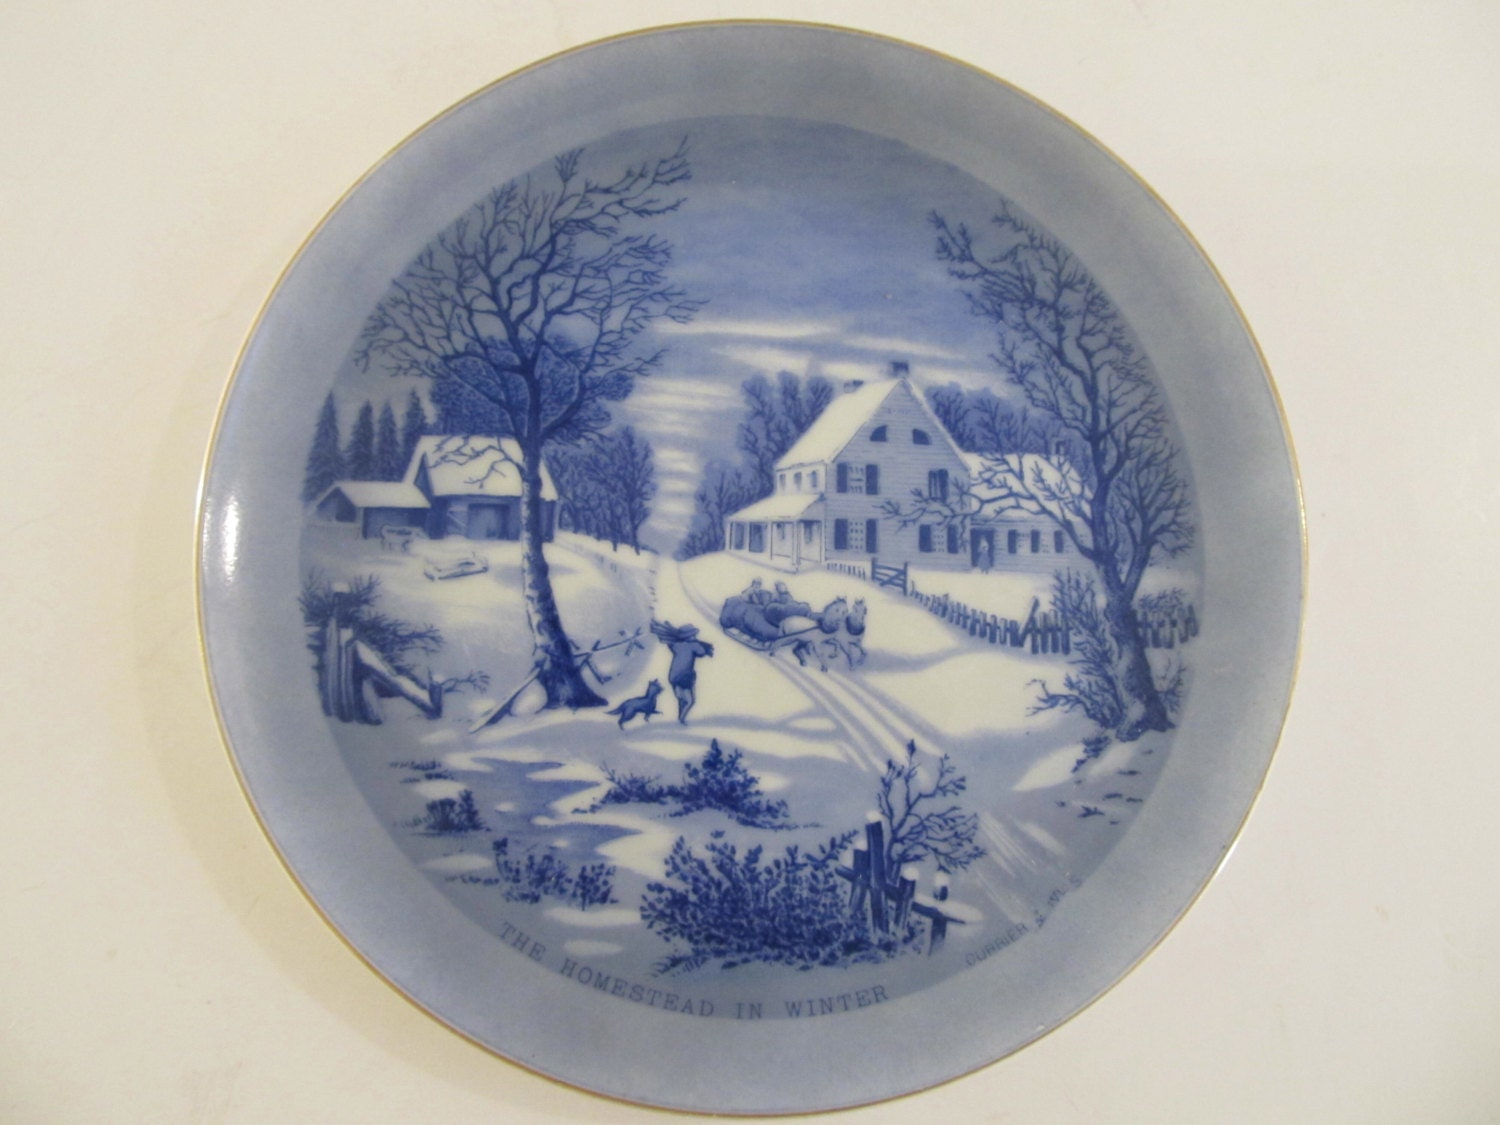 The homestead in winter plates decorative plates japan for Decor plates